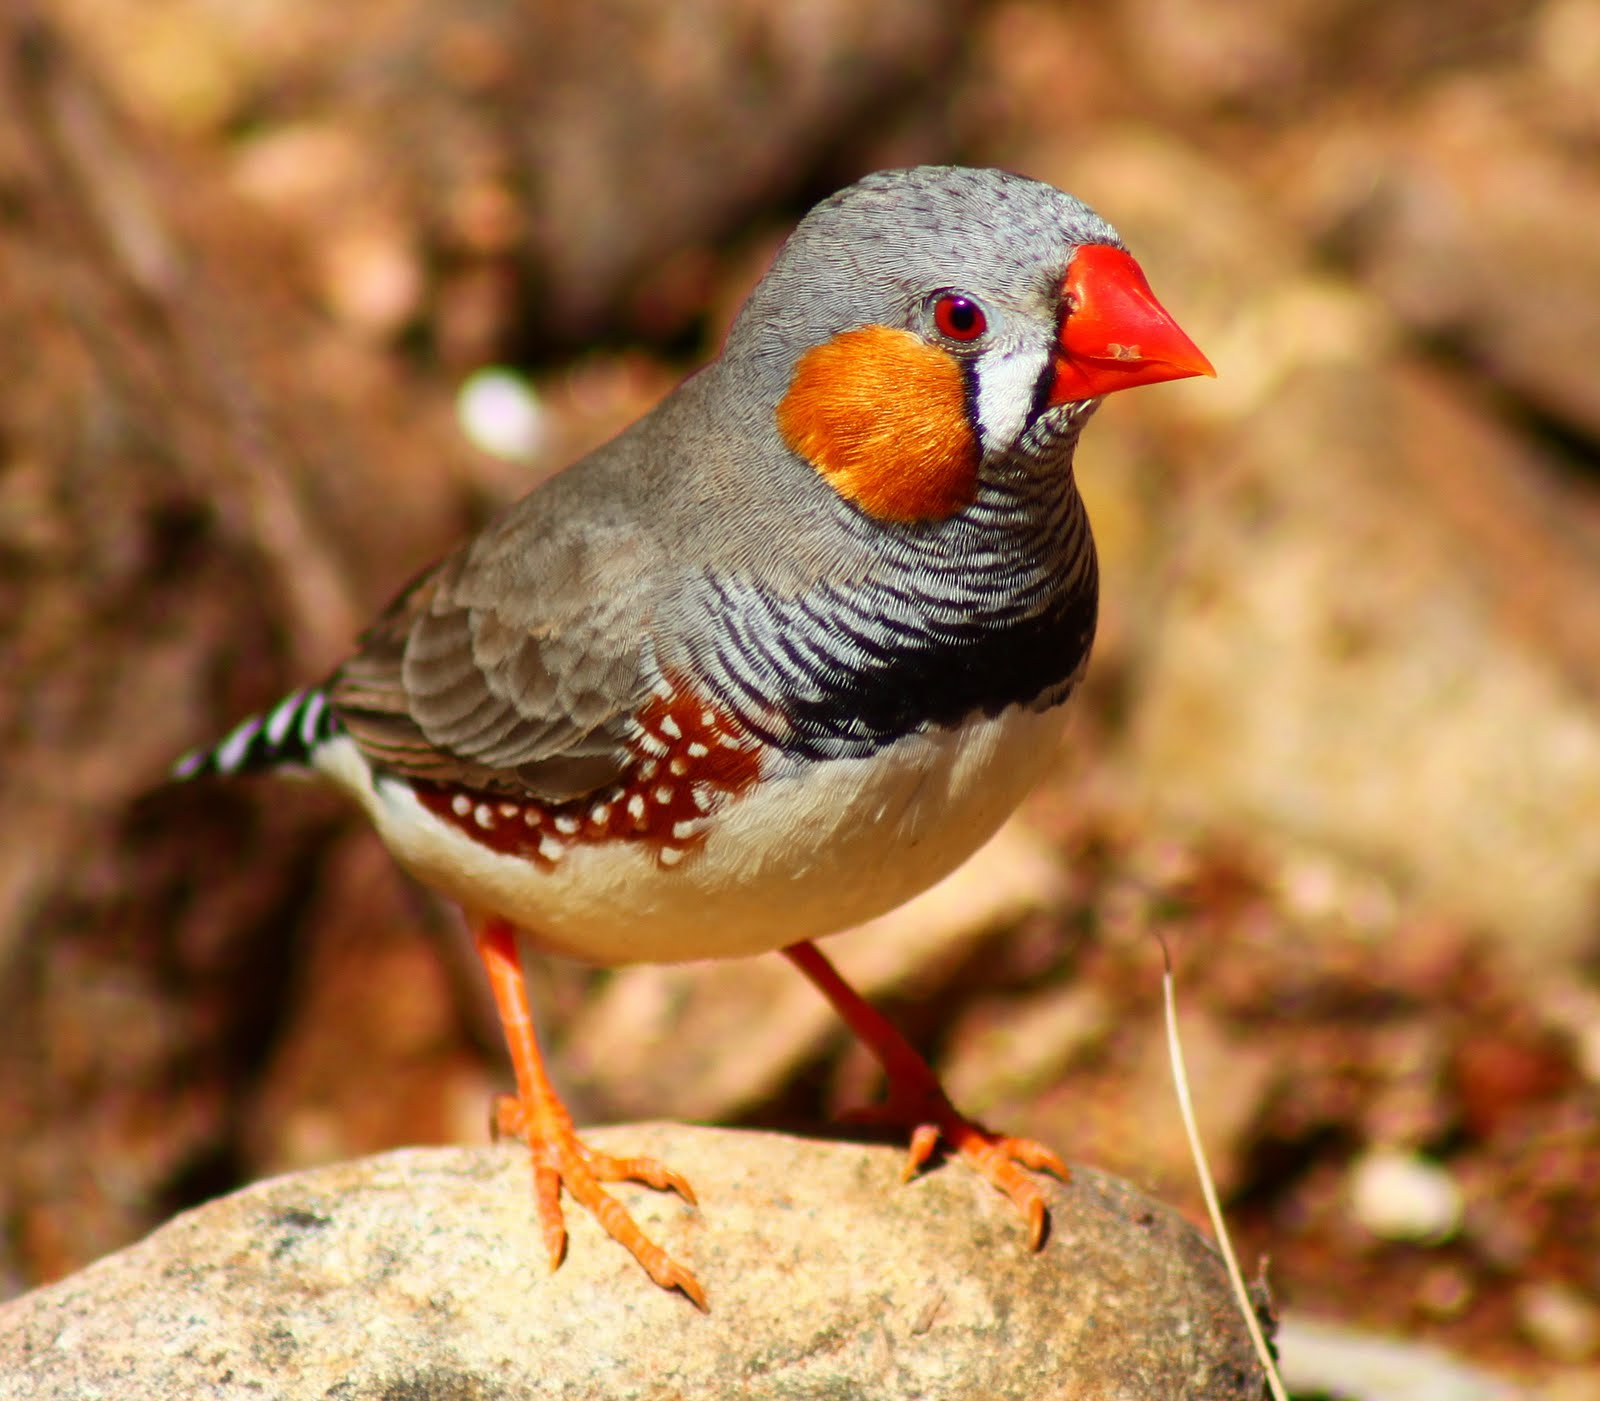 Richard Waring's Birds of Australia: Zebra Finches (again) but they are so friendly1600 x 1401 jpeg 209kB